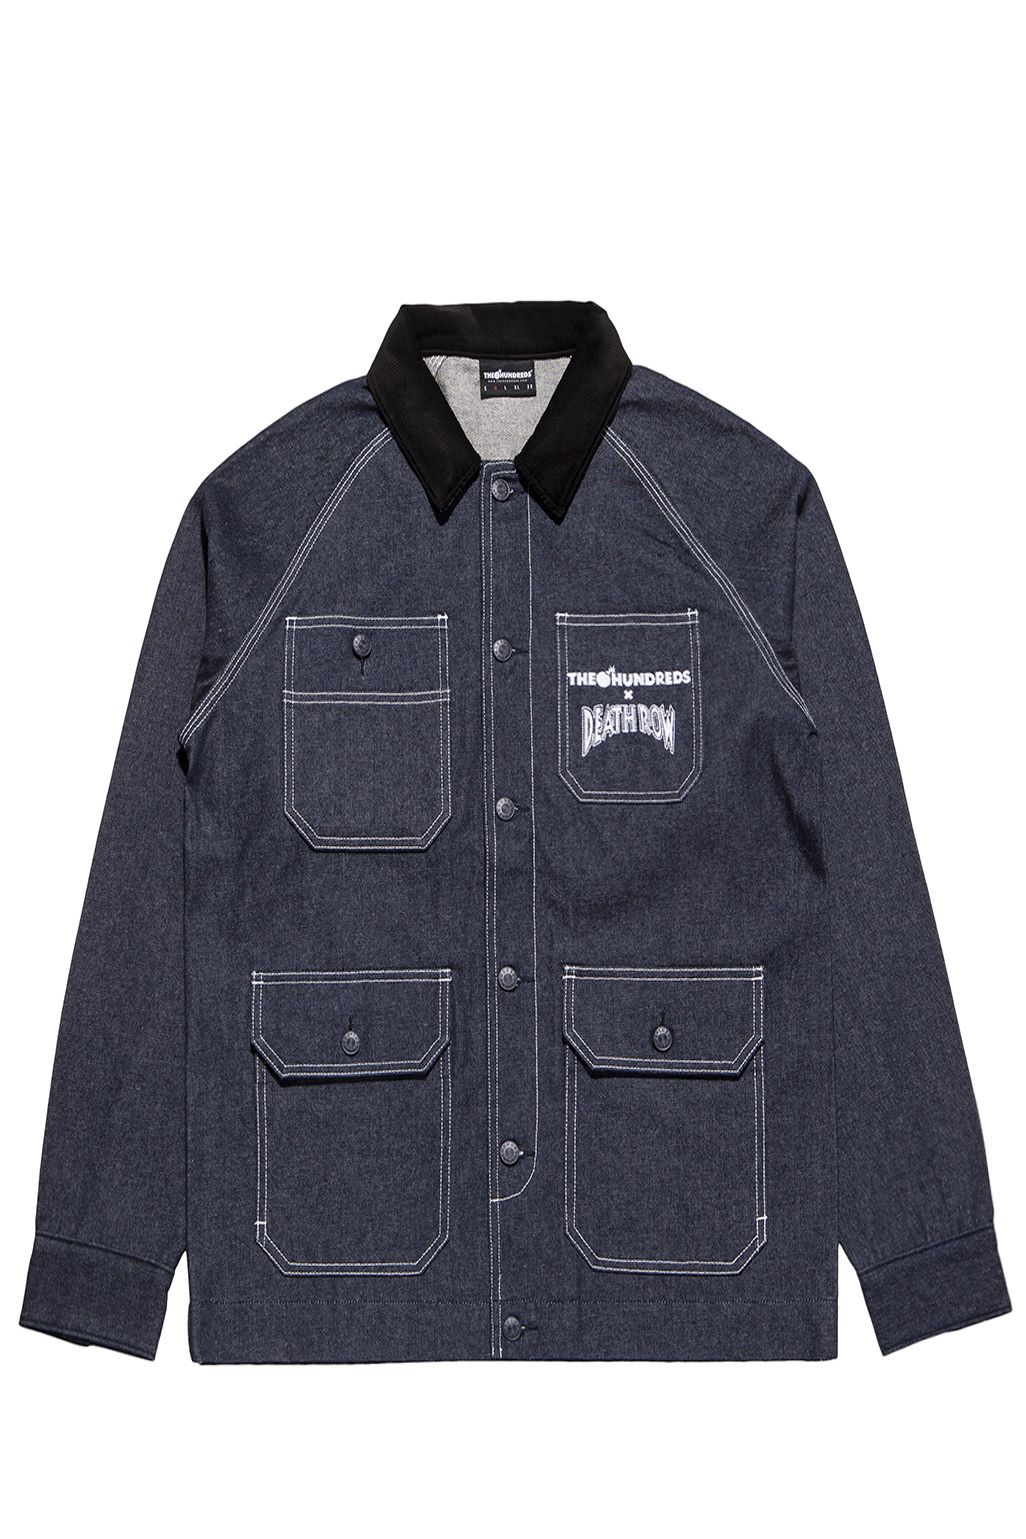 Veste en jean - The Hundreds x Death Row